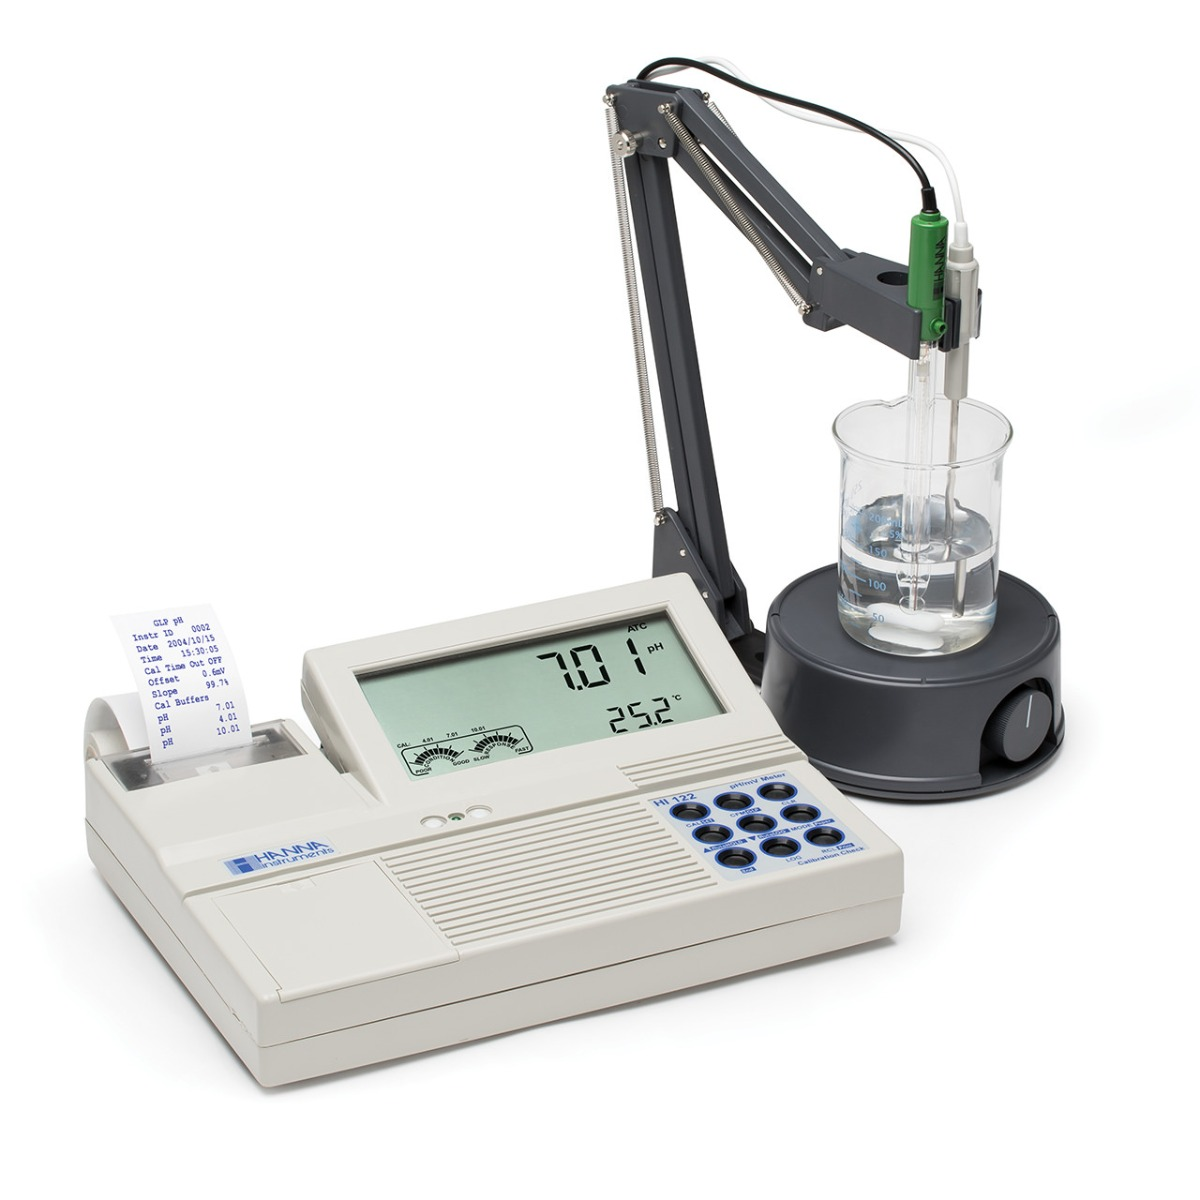 Professional Benchtop pH/mV Meter with Built-in Printer - HI122